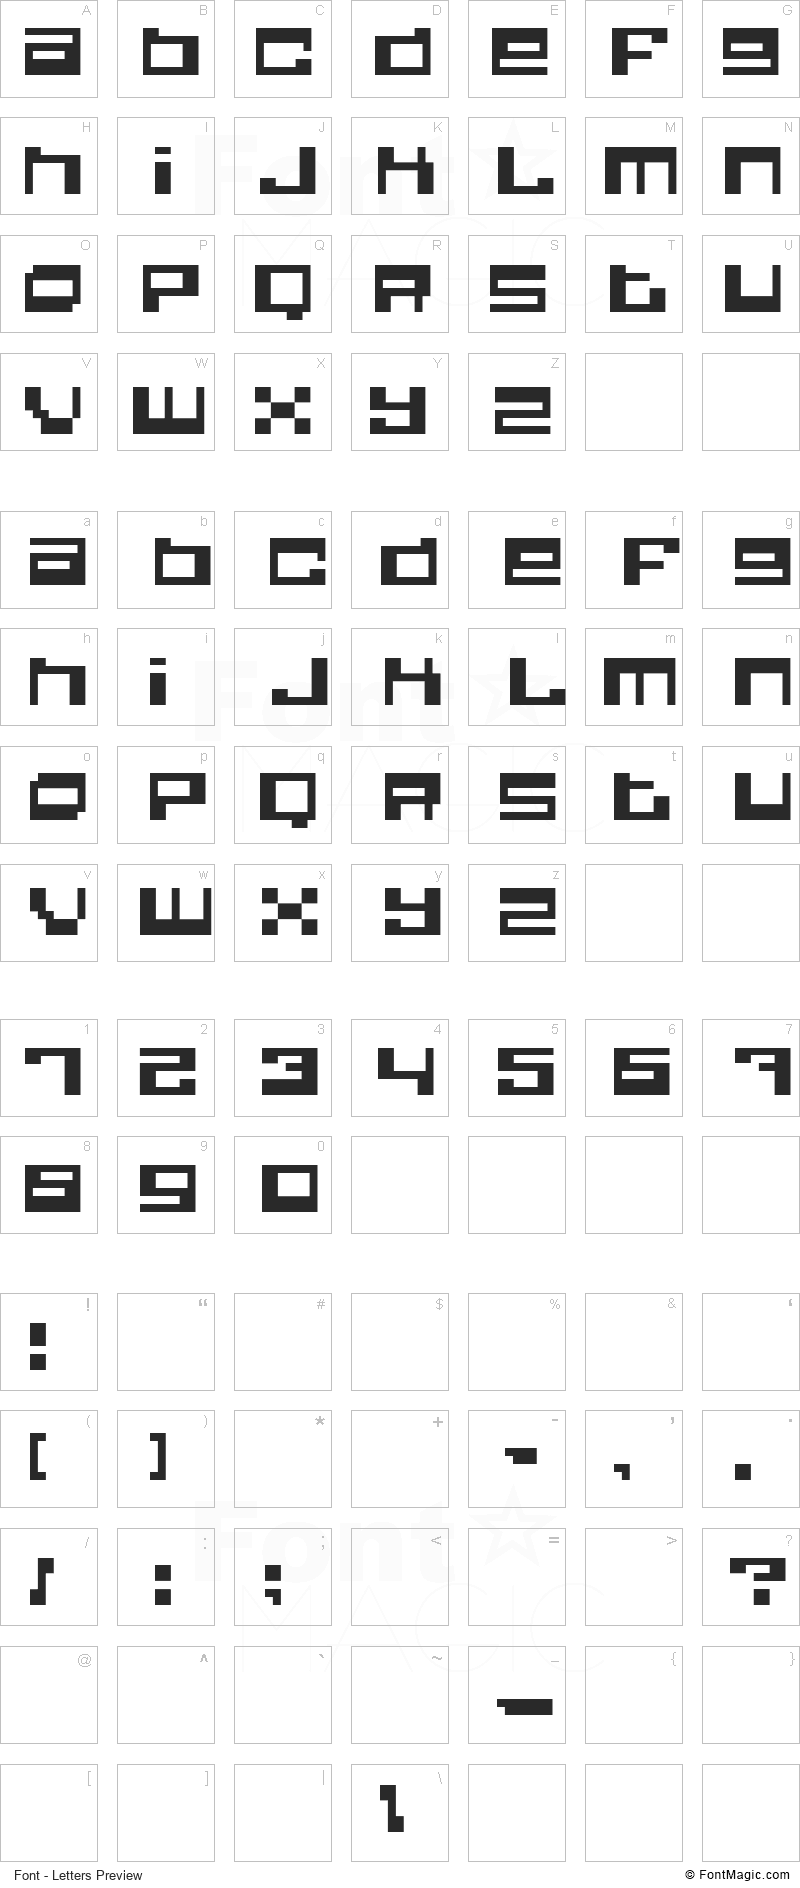 Quadrron Font - All Latters Preview Chart